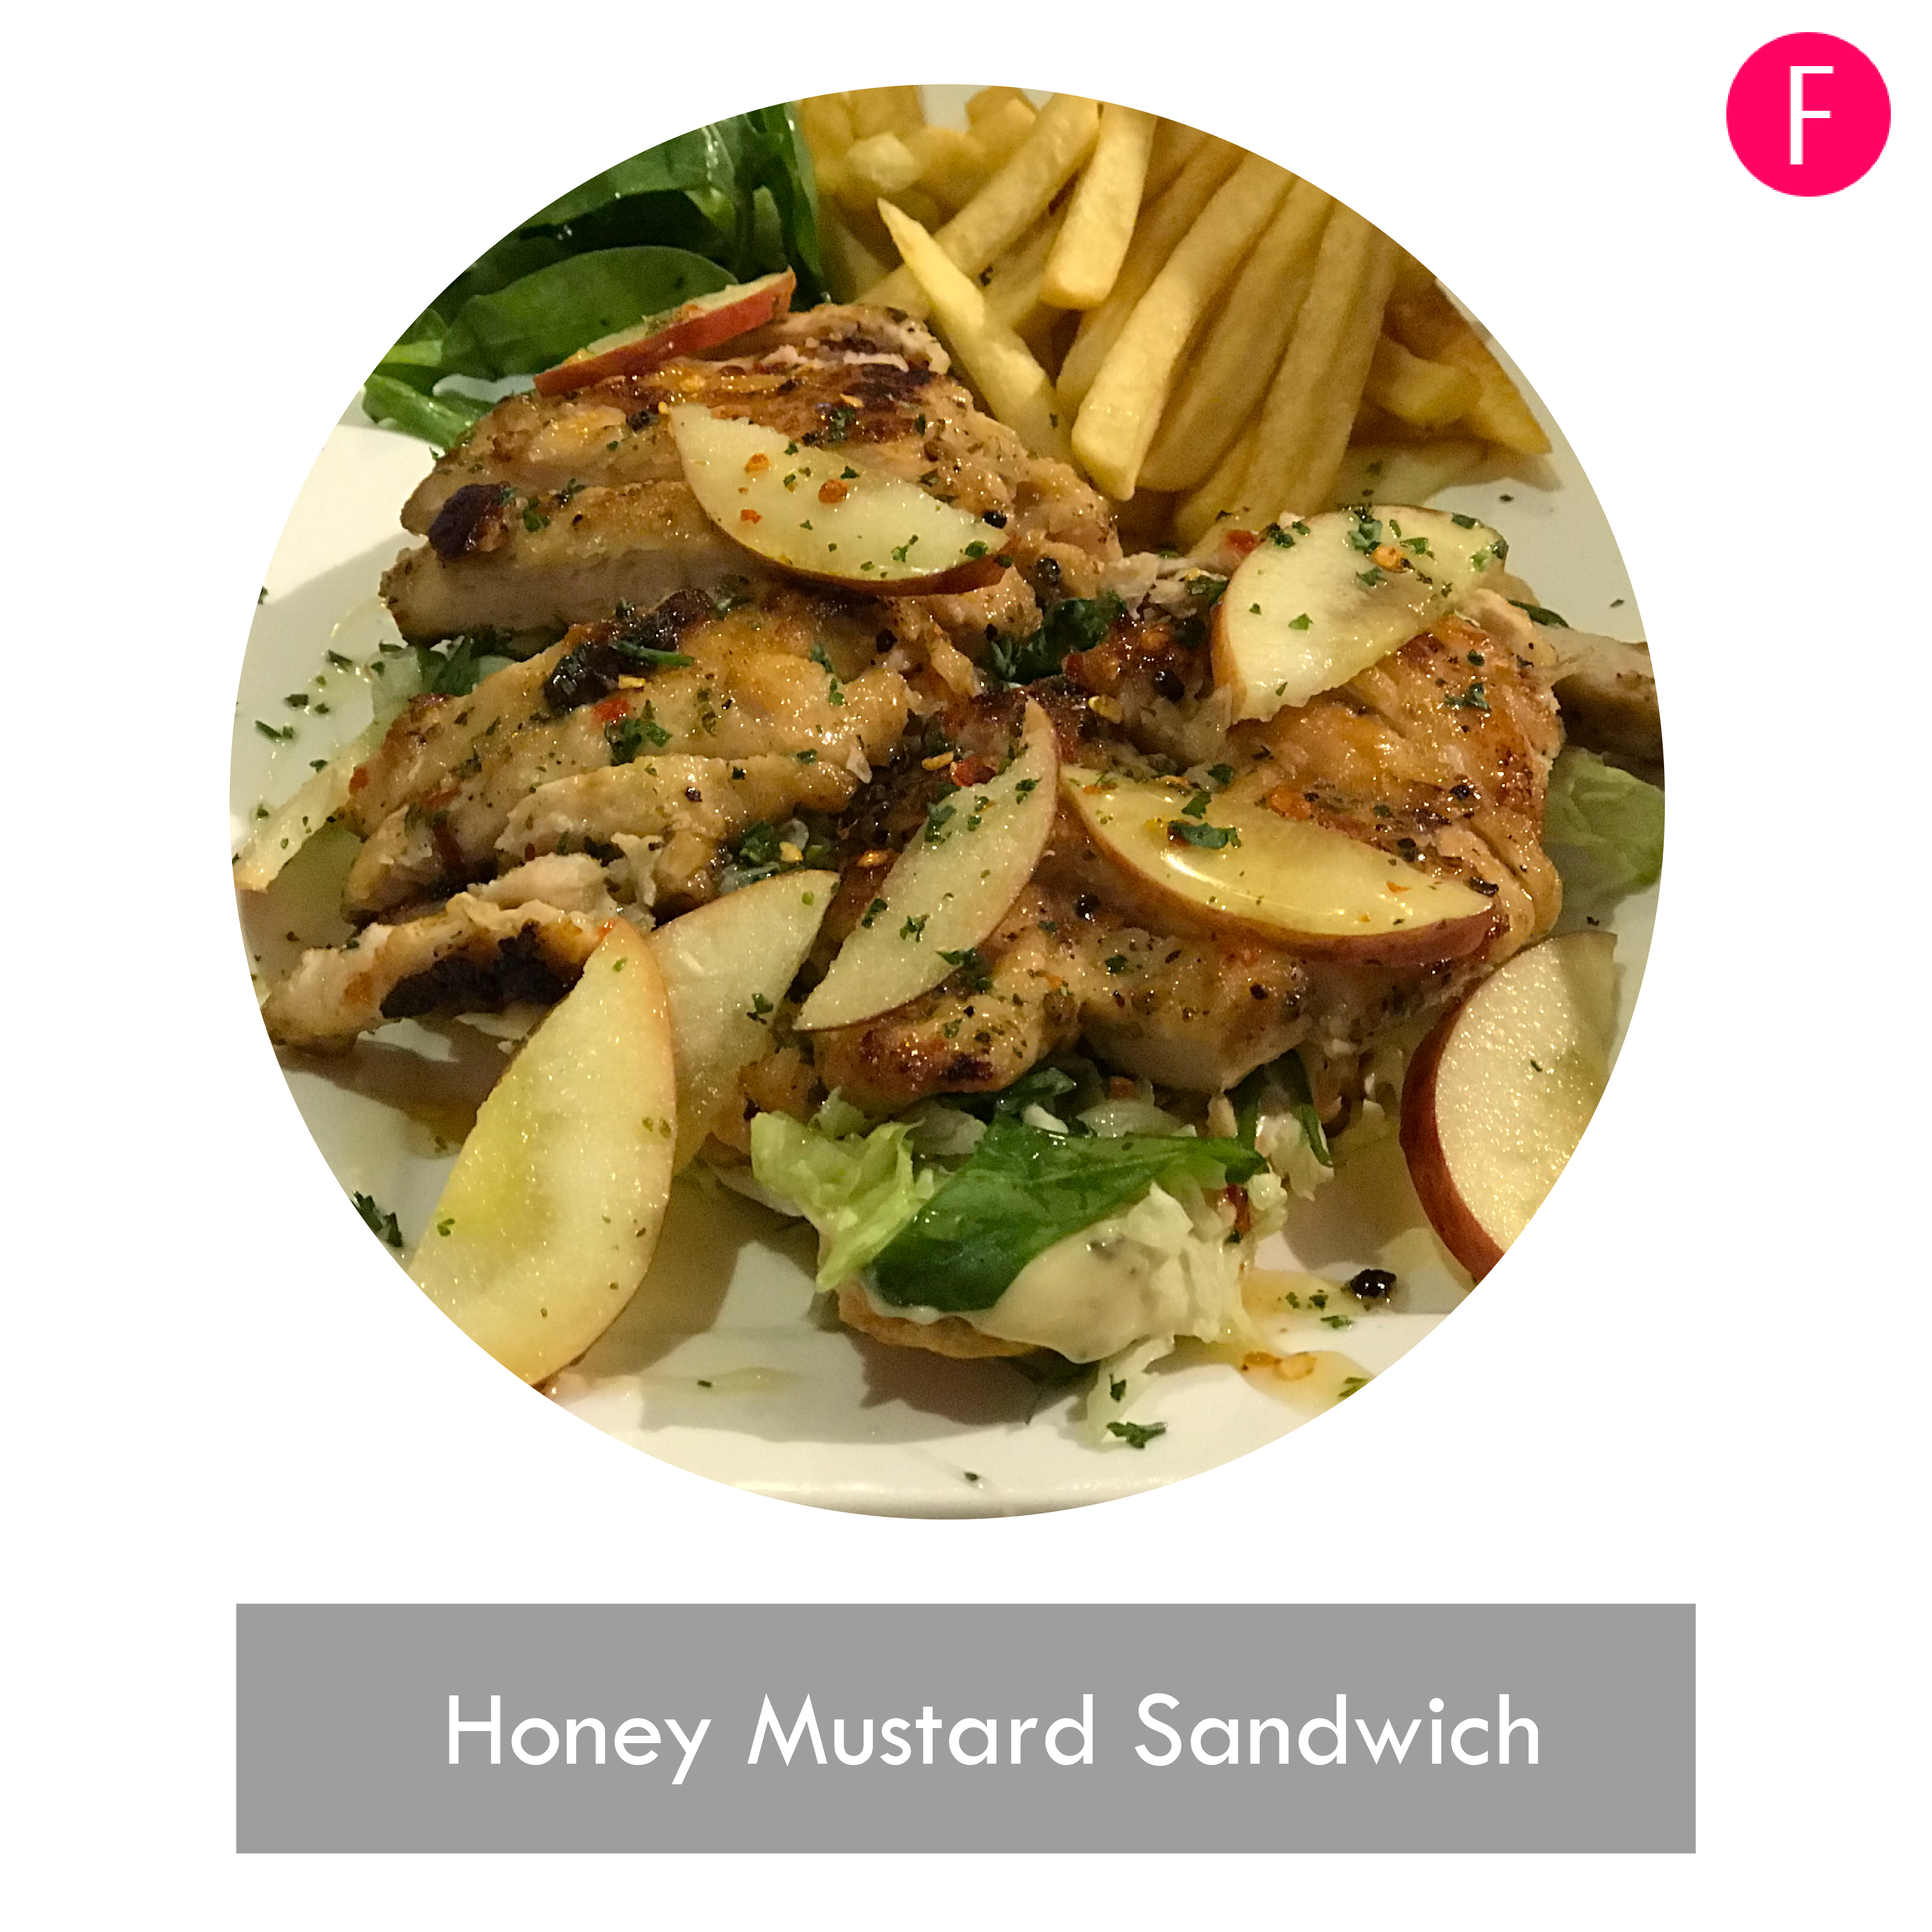 Honey mustard sandwich, open faced sandwich, Vintage cafe